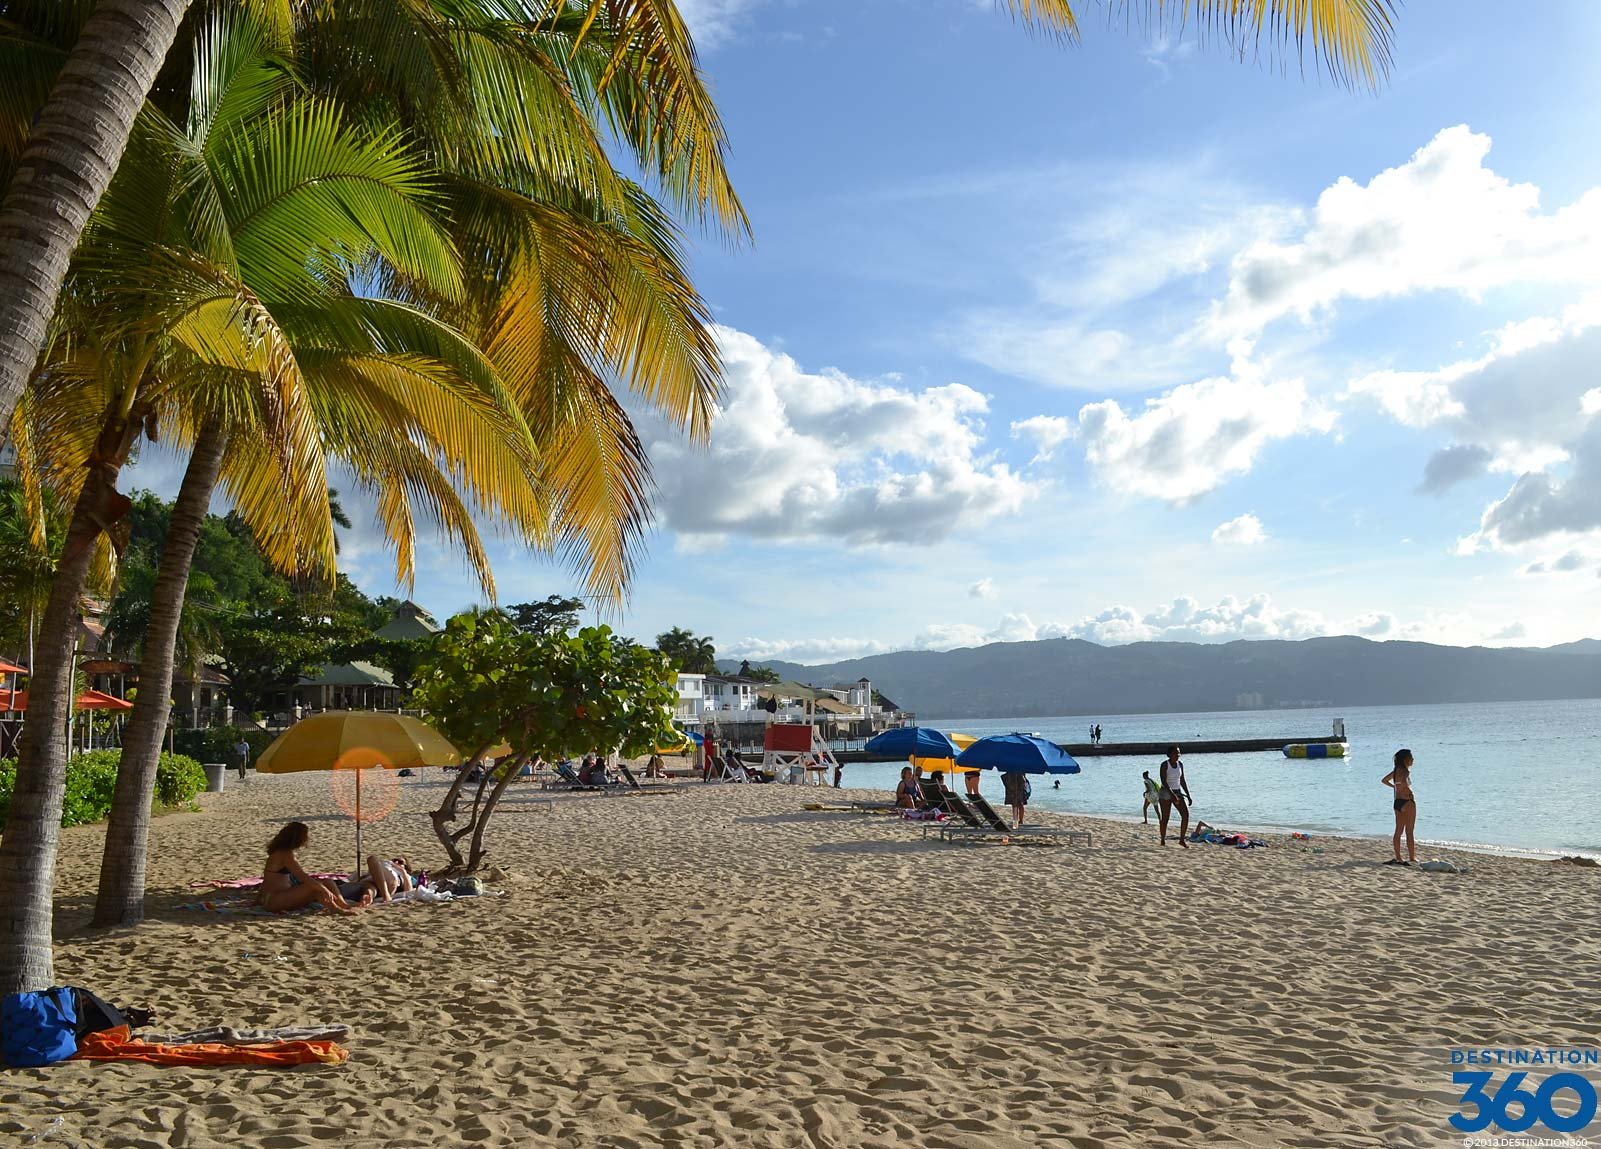 Montego Bay Beaches Virtual Tour